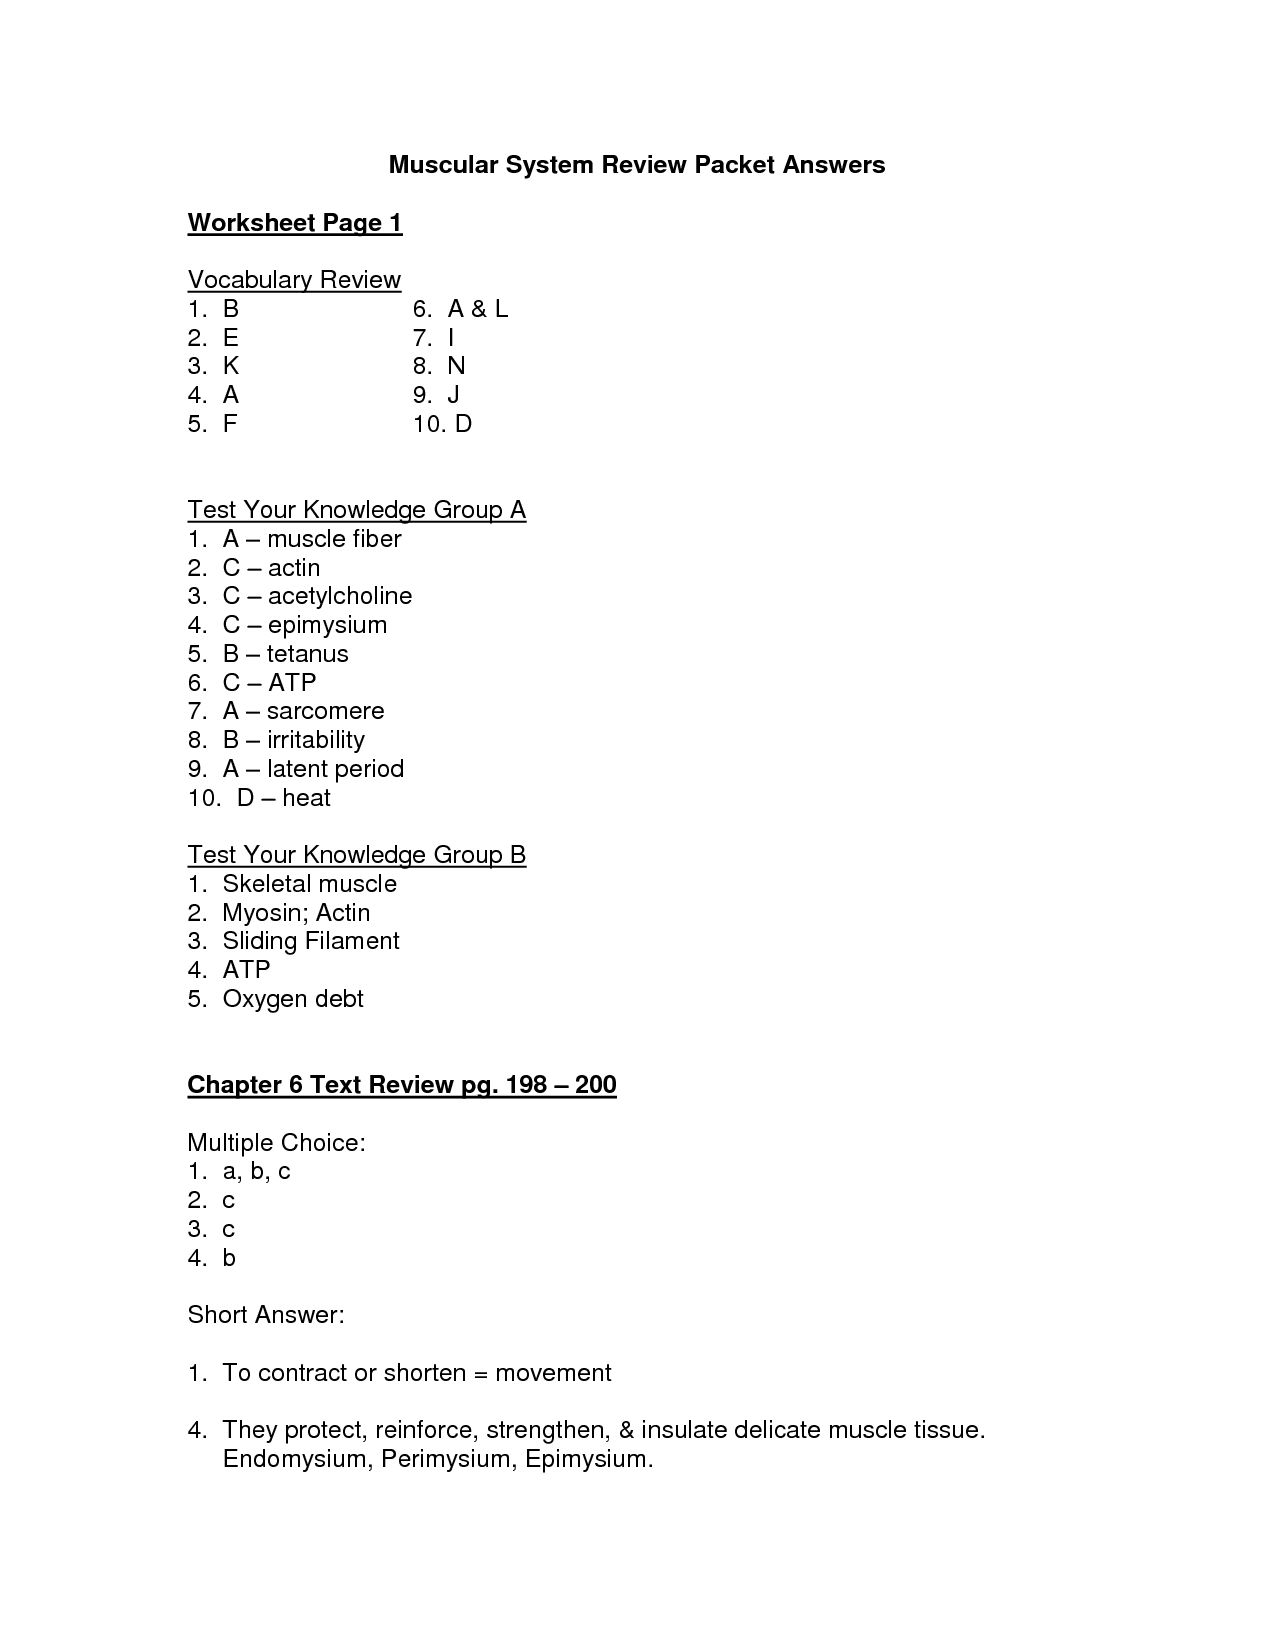 The Human Digestive System Worksheet Answers